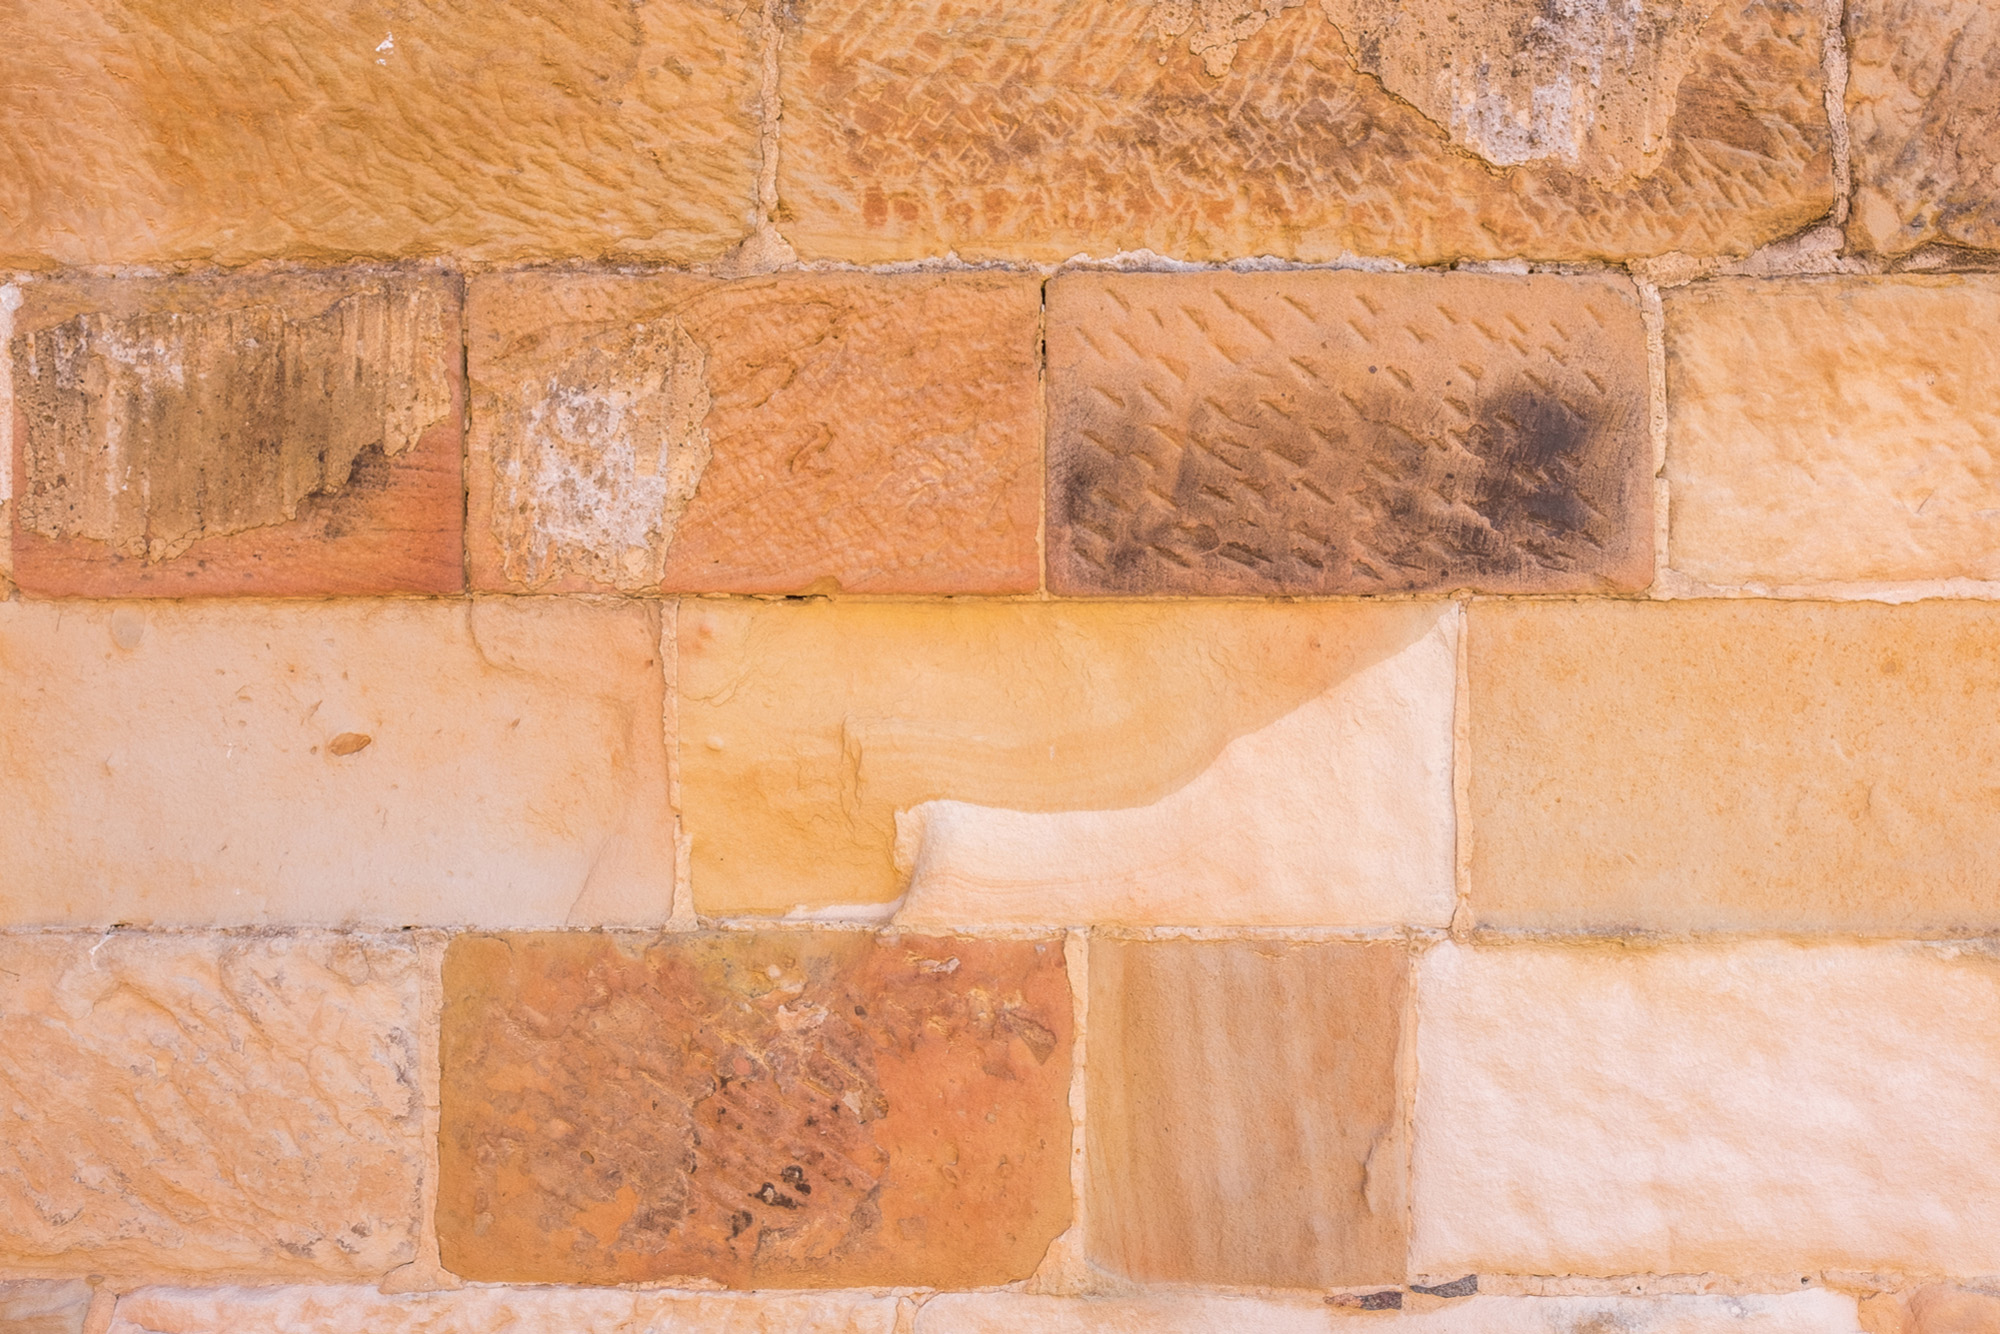 Sandstone wall-72 ppi